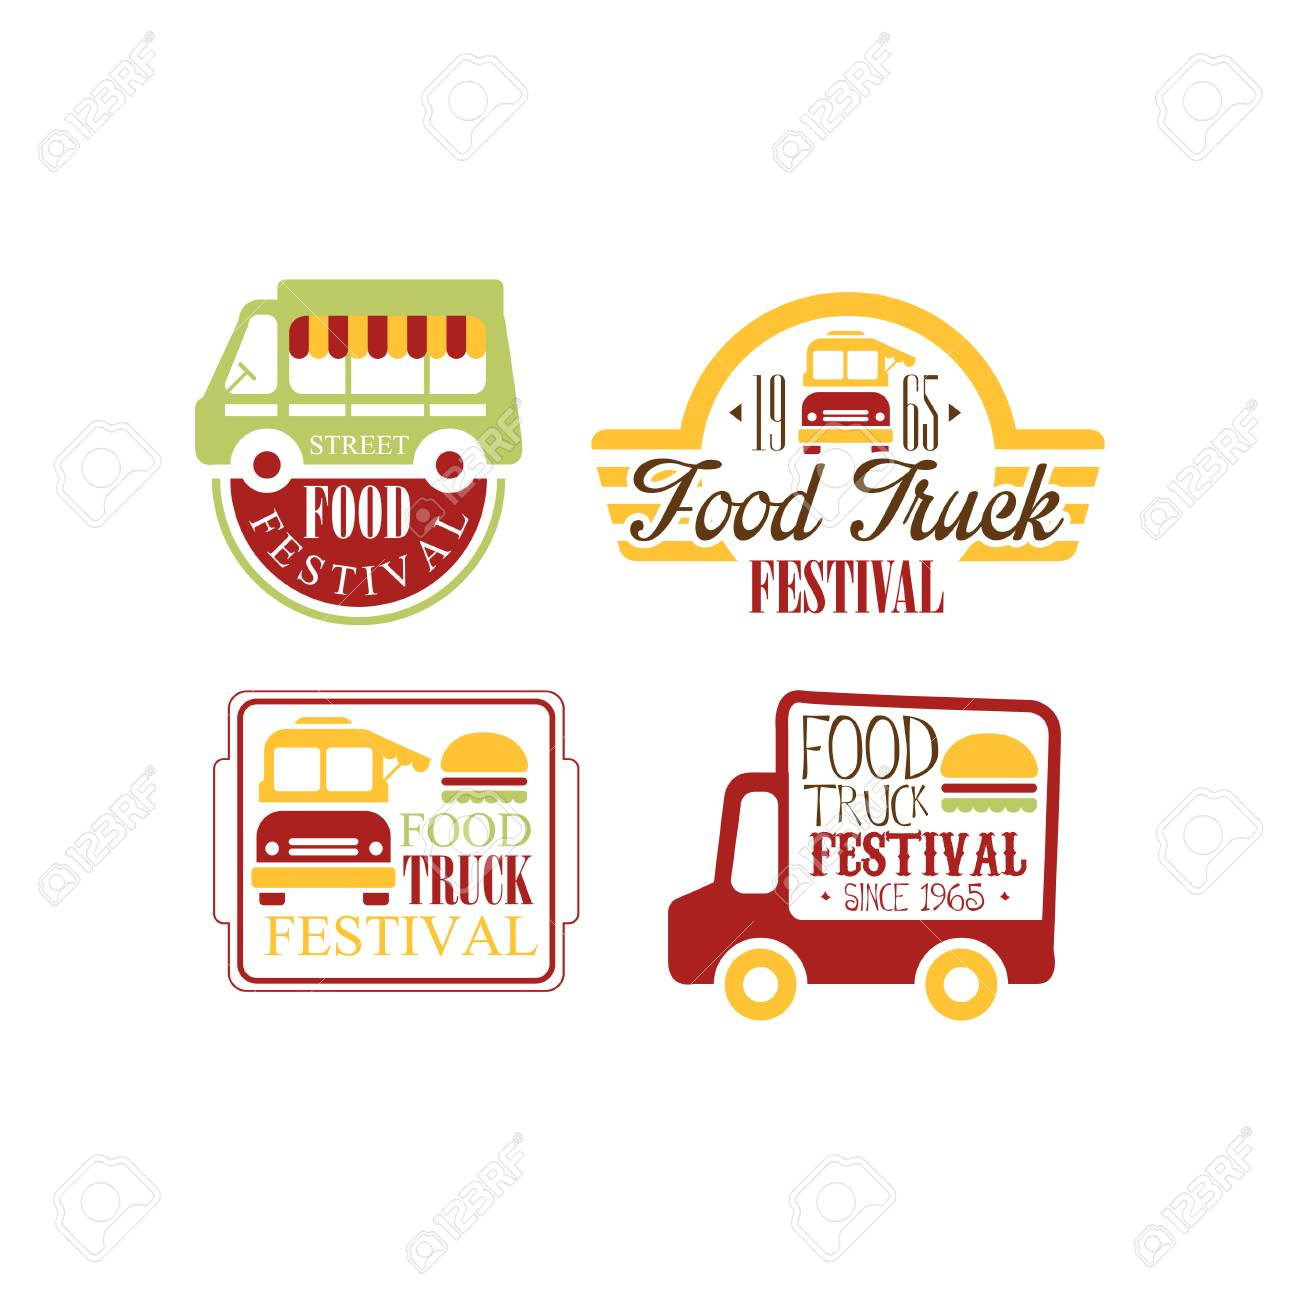 Vector Set Of Colorful Templates For Food Truck Festival Burger